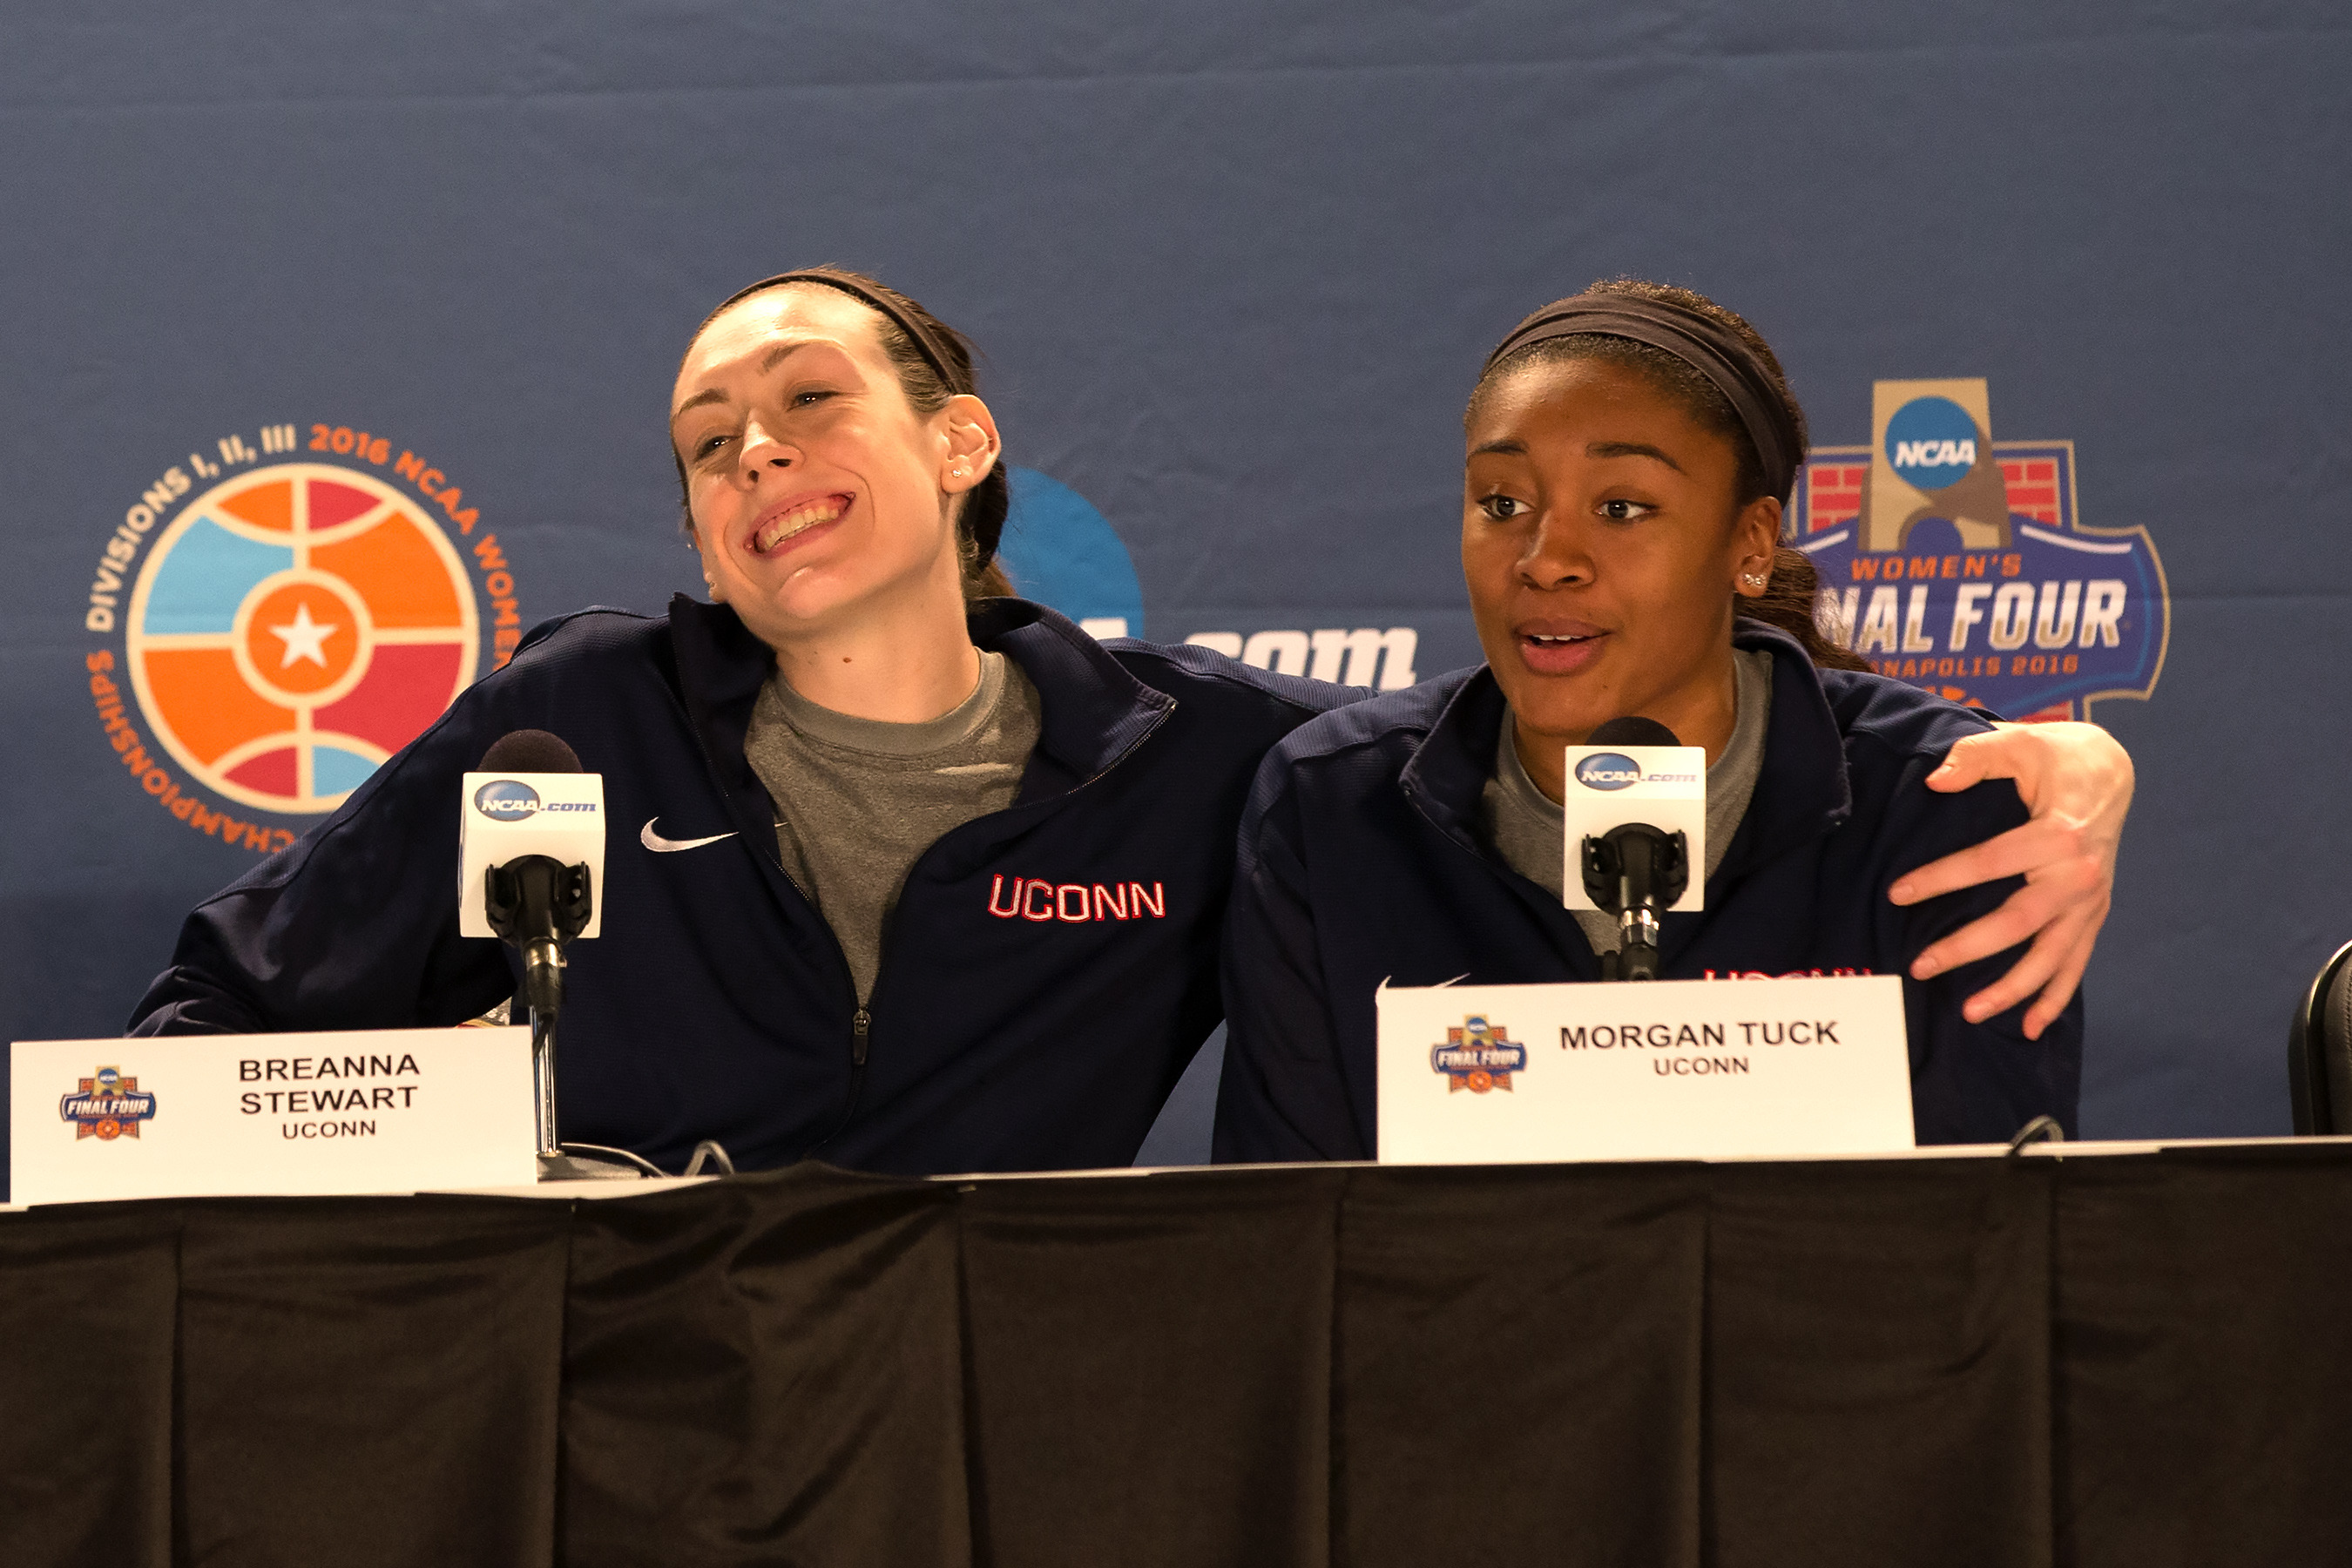 5b63348cd9d Breanna Stewart and Morgan Tuck have been nominated for the NCAA Woman of  the Year Award